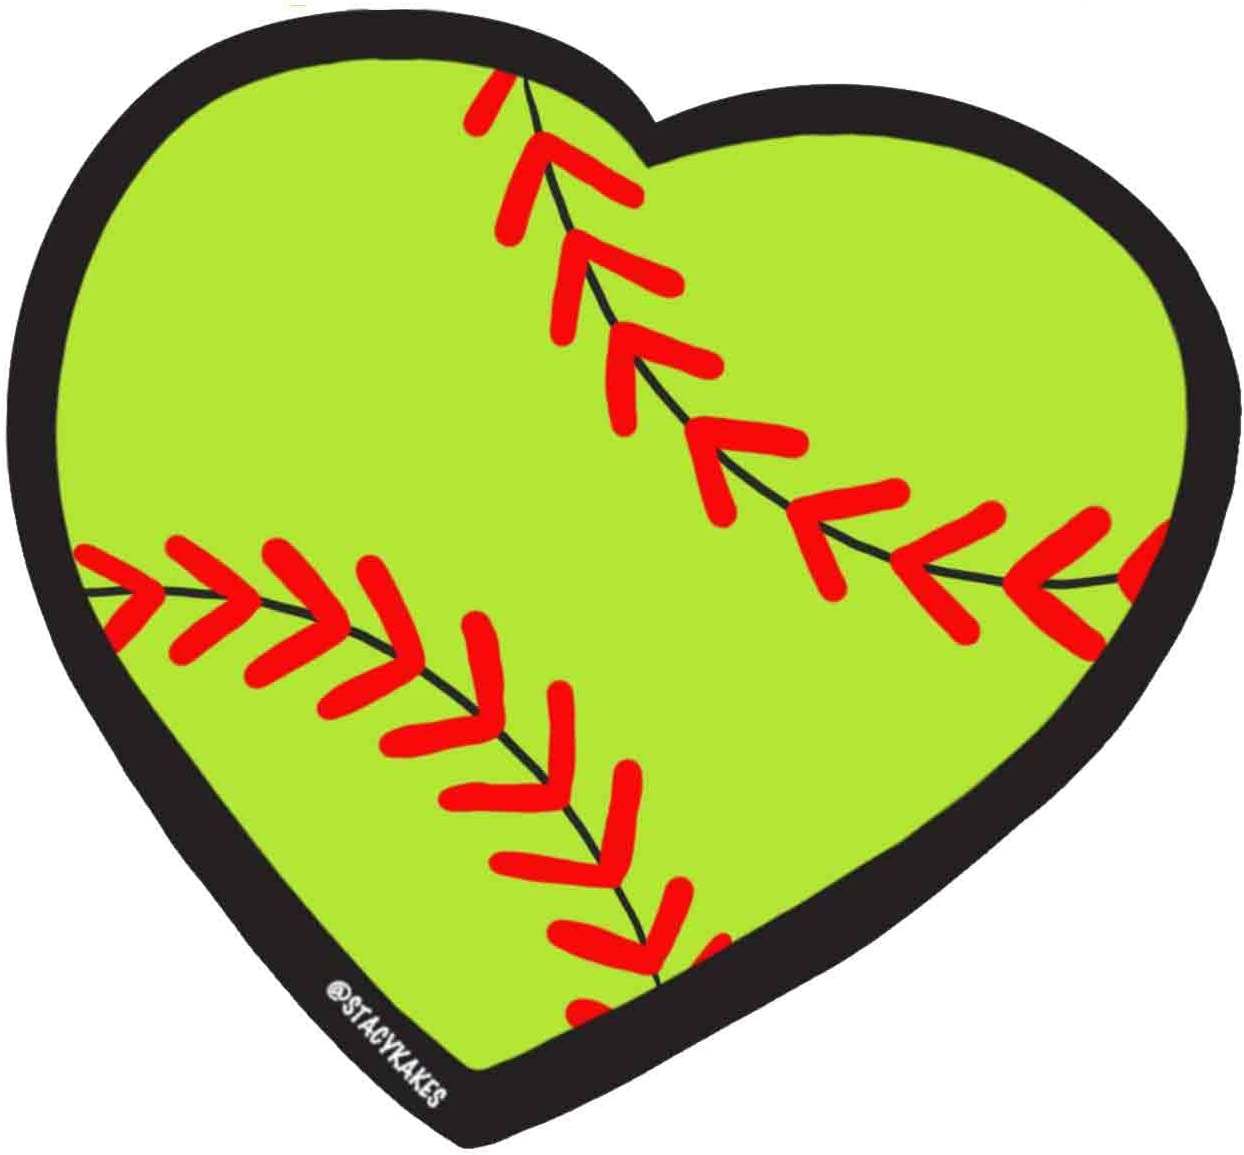 Softball Heart Decal - for Cars, Laptops, and More! - Use Inside or Outside - Sicks to Any Flat Smooth Surface